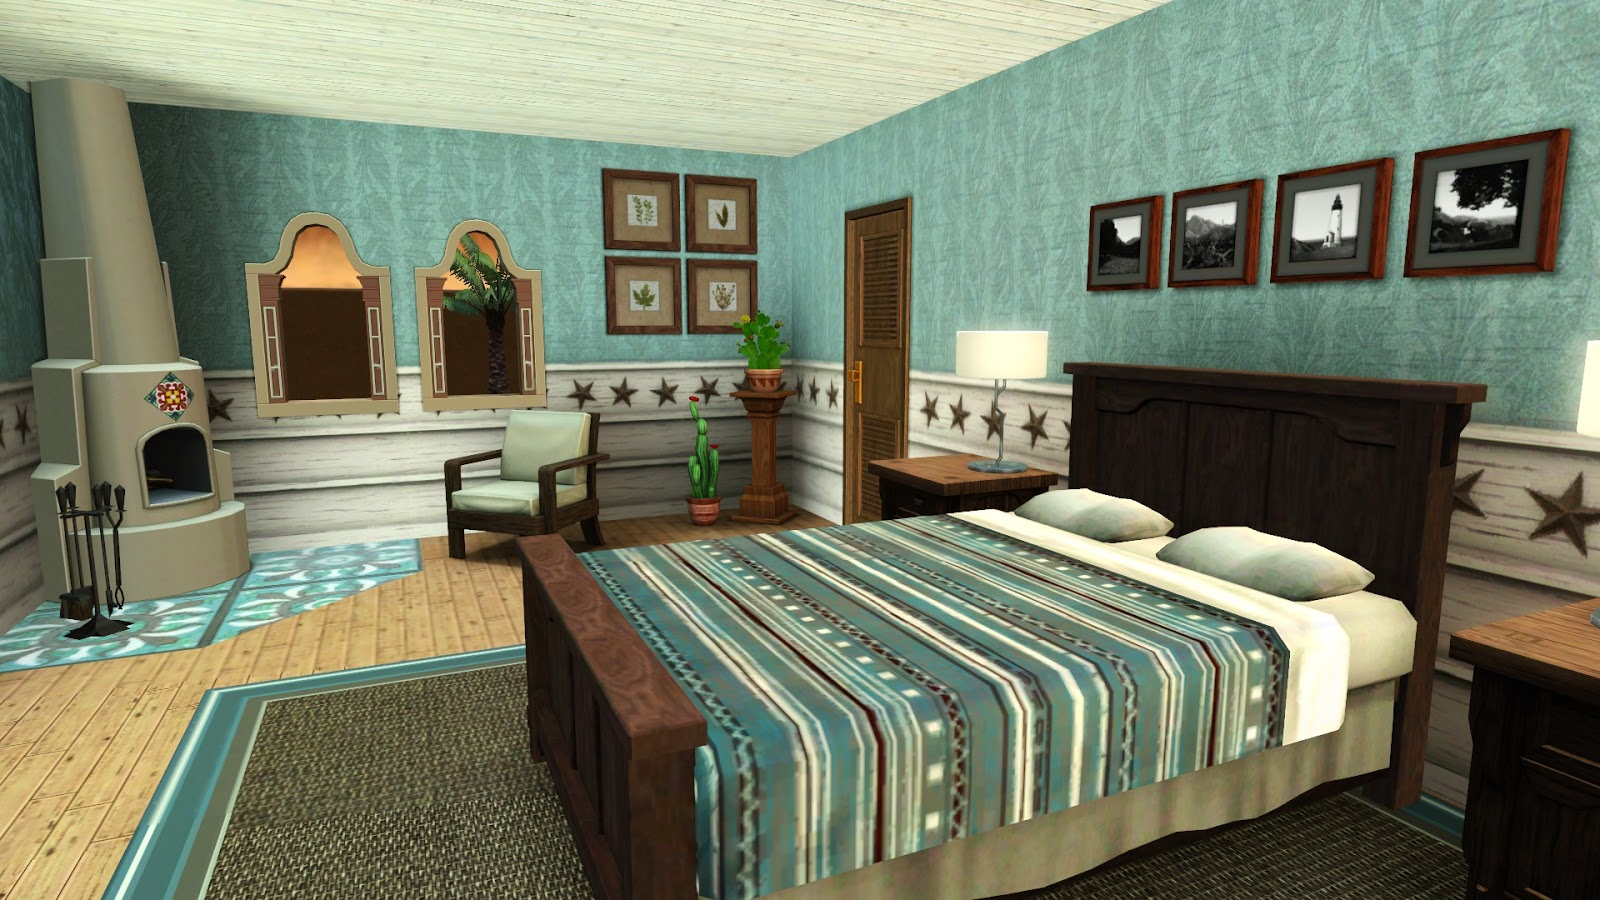 Sims 3 Bedroom Decor Bedroom The Sims 3